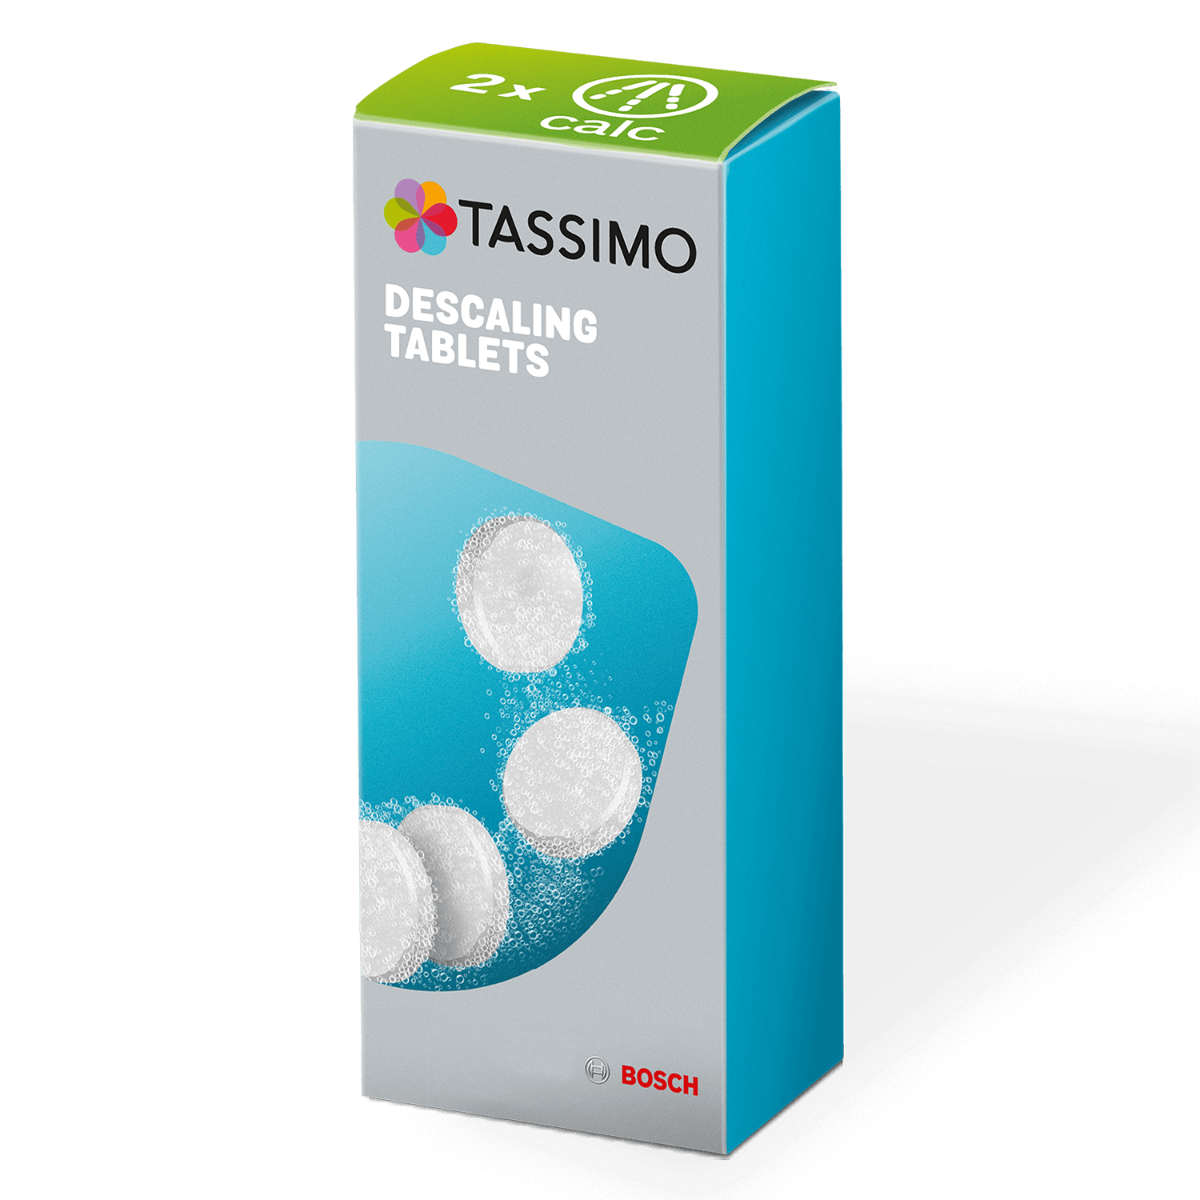 TASSIMO Descaling tablets